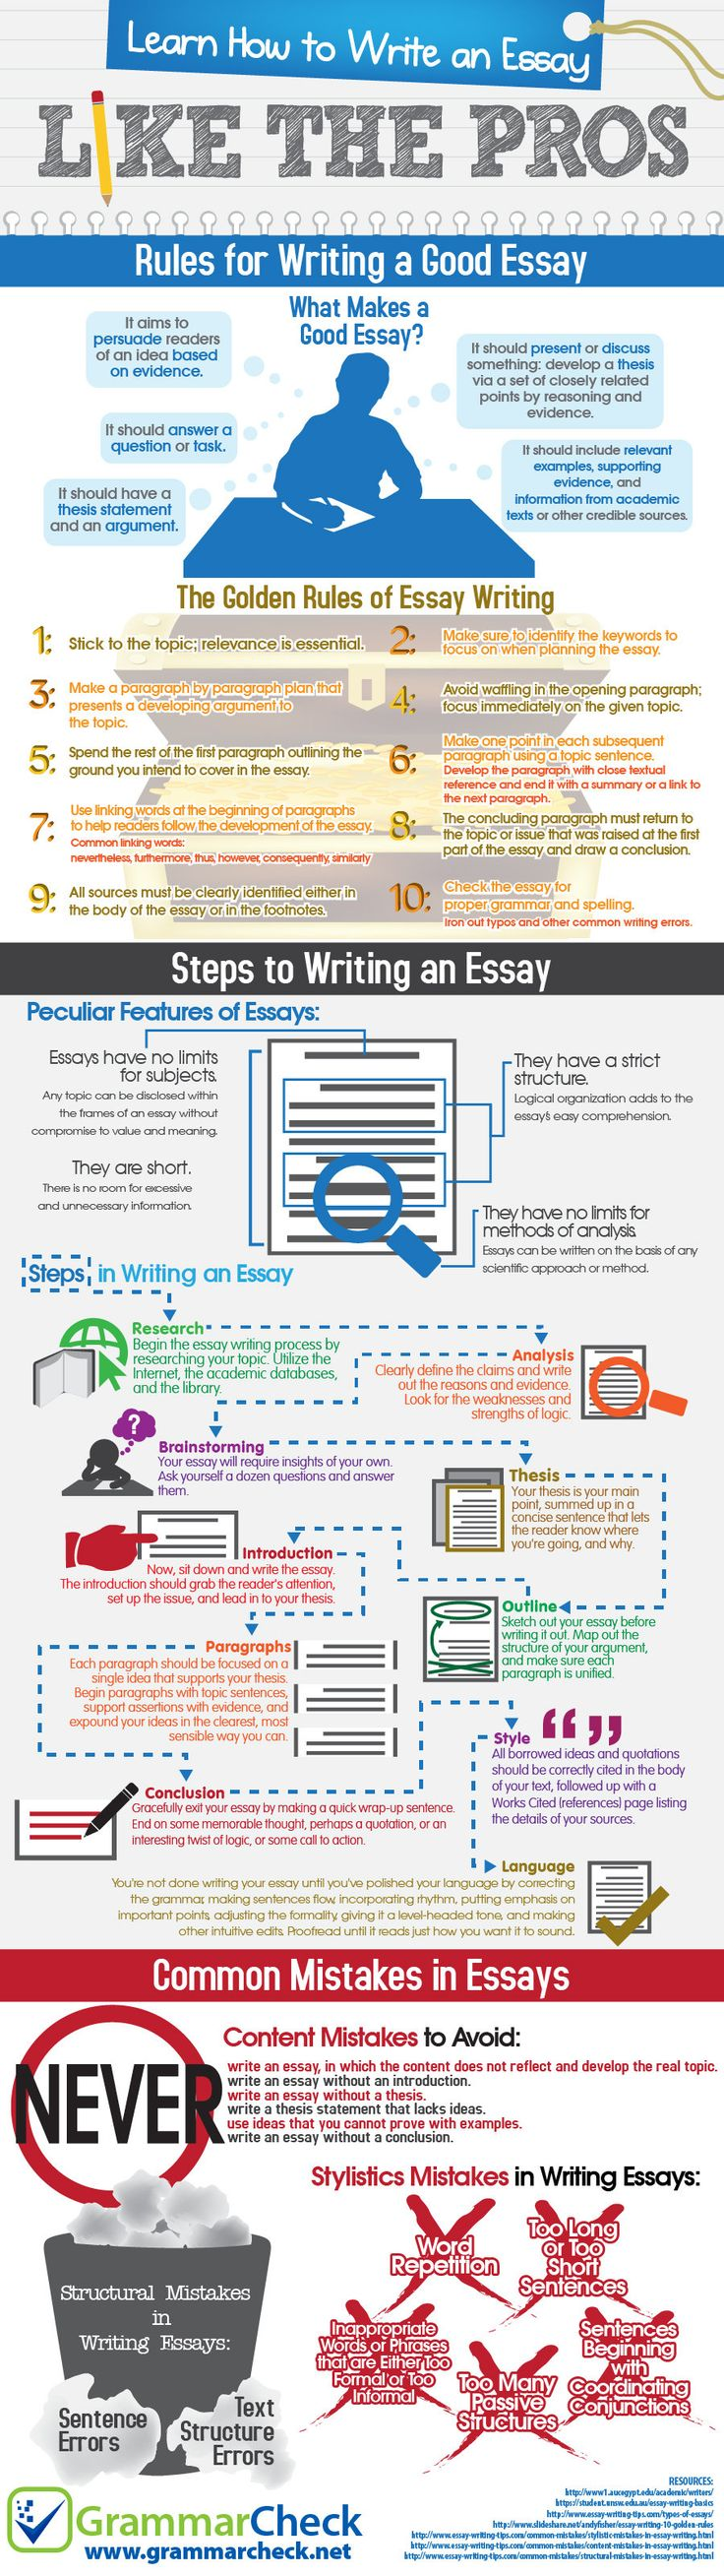 write my essay for me please order essay service online rules help abstract